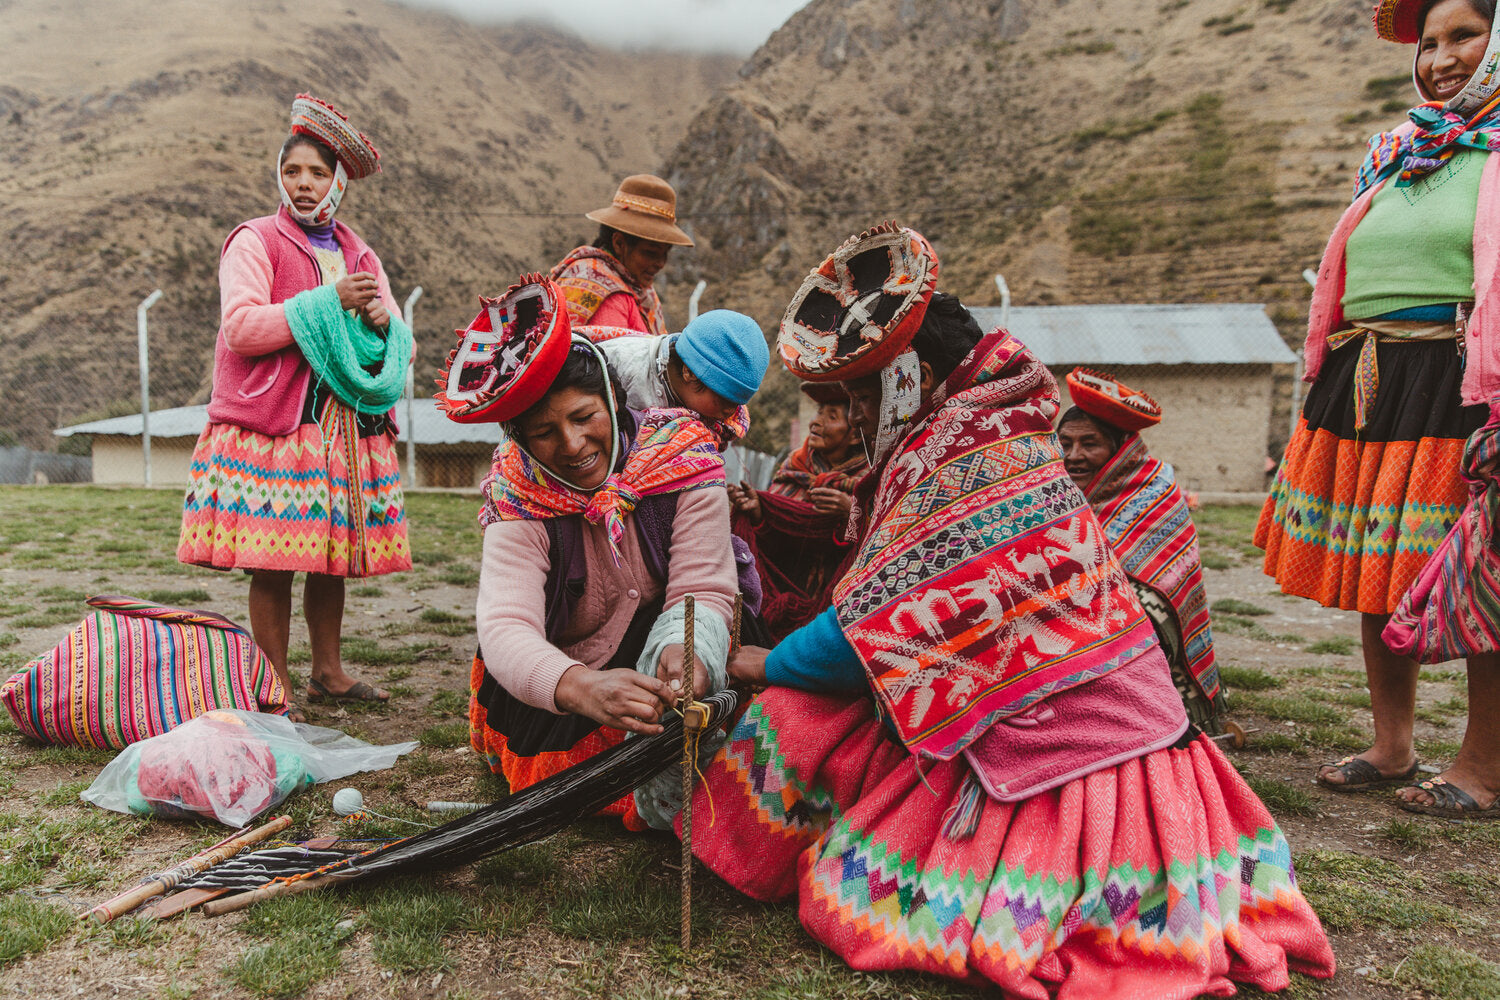 Awamaki. Supporting female artisans in the Peruvian Andes.